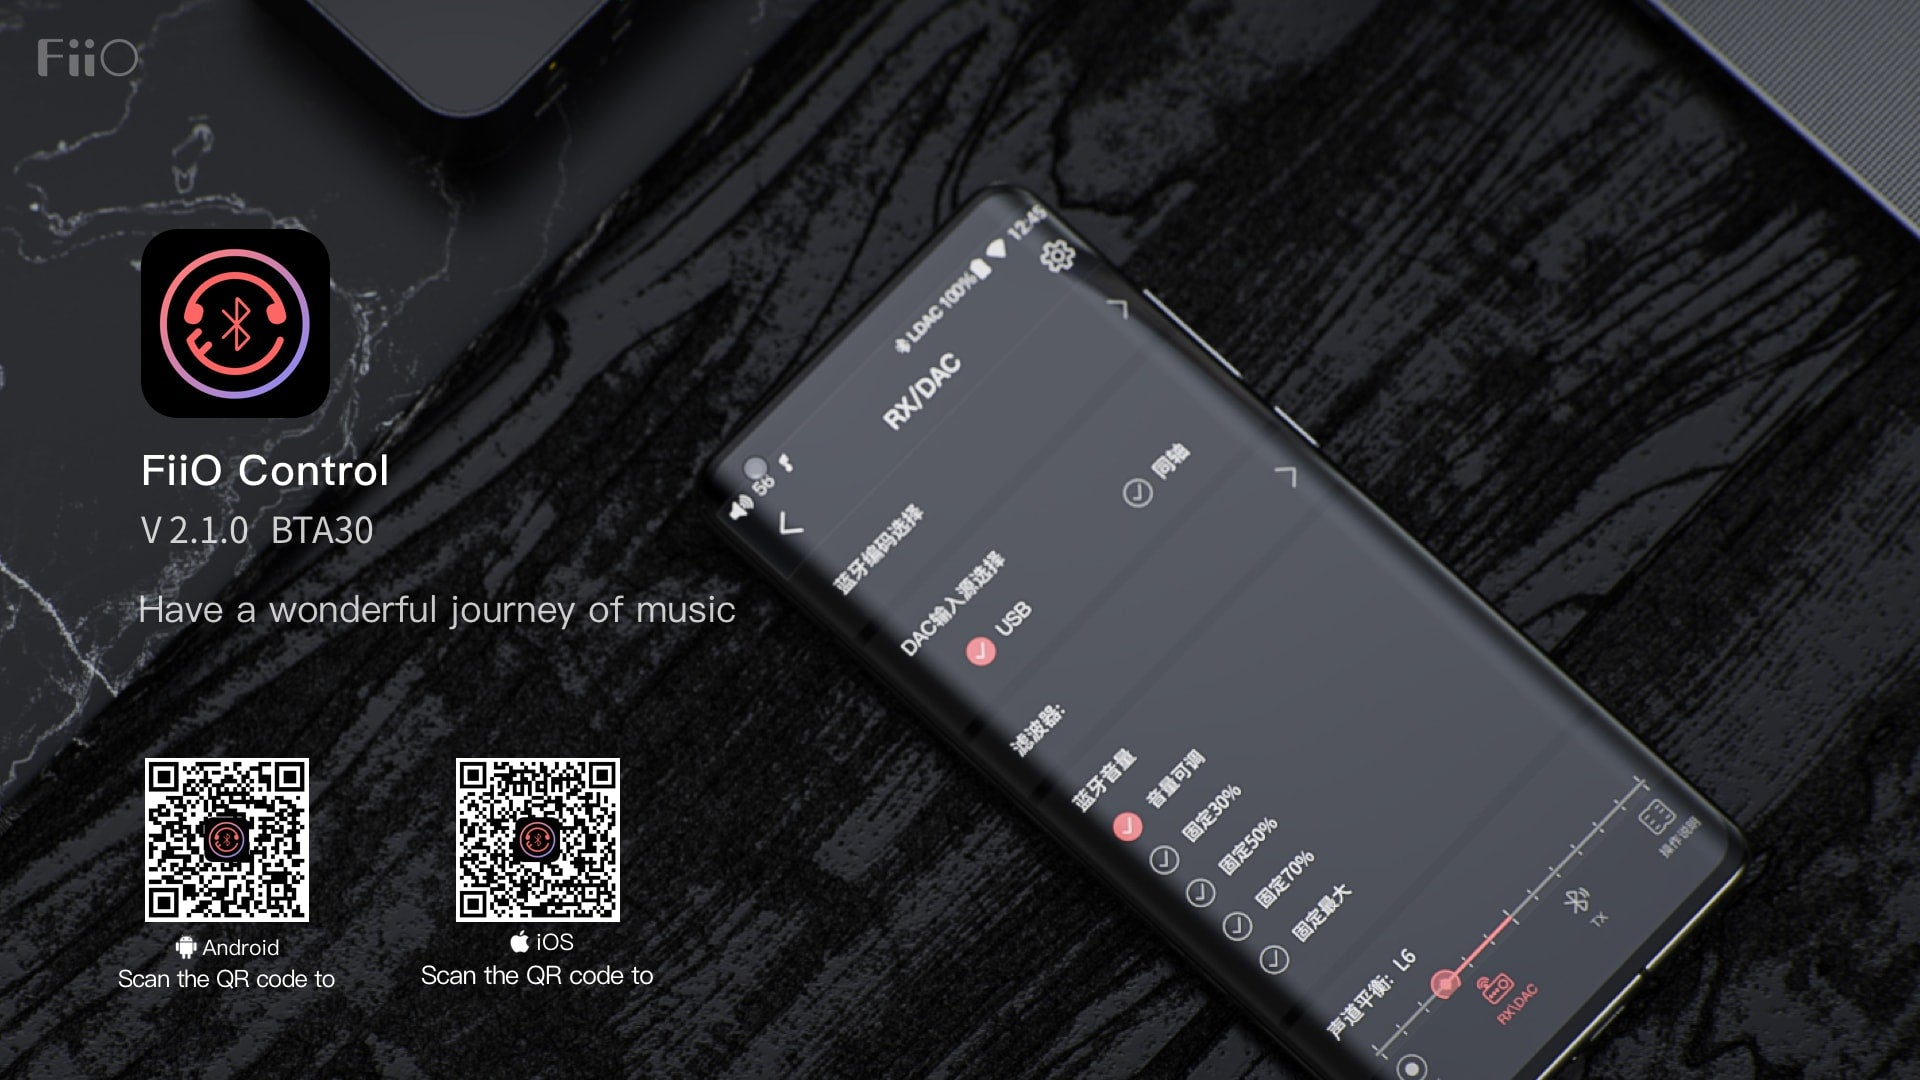 FiiO Control APP V2.1.0 for iOS, Android device update now!